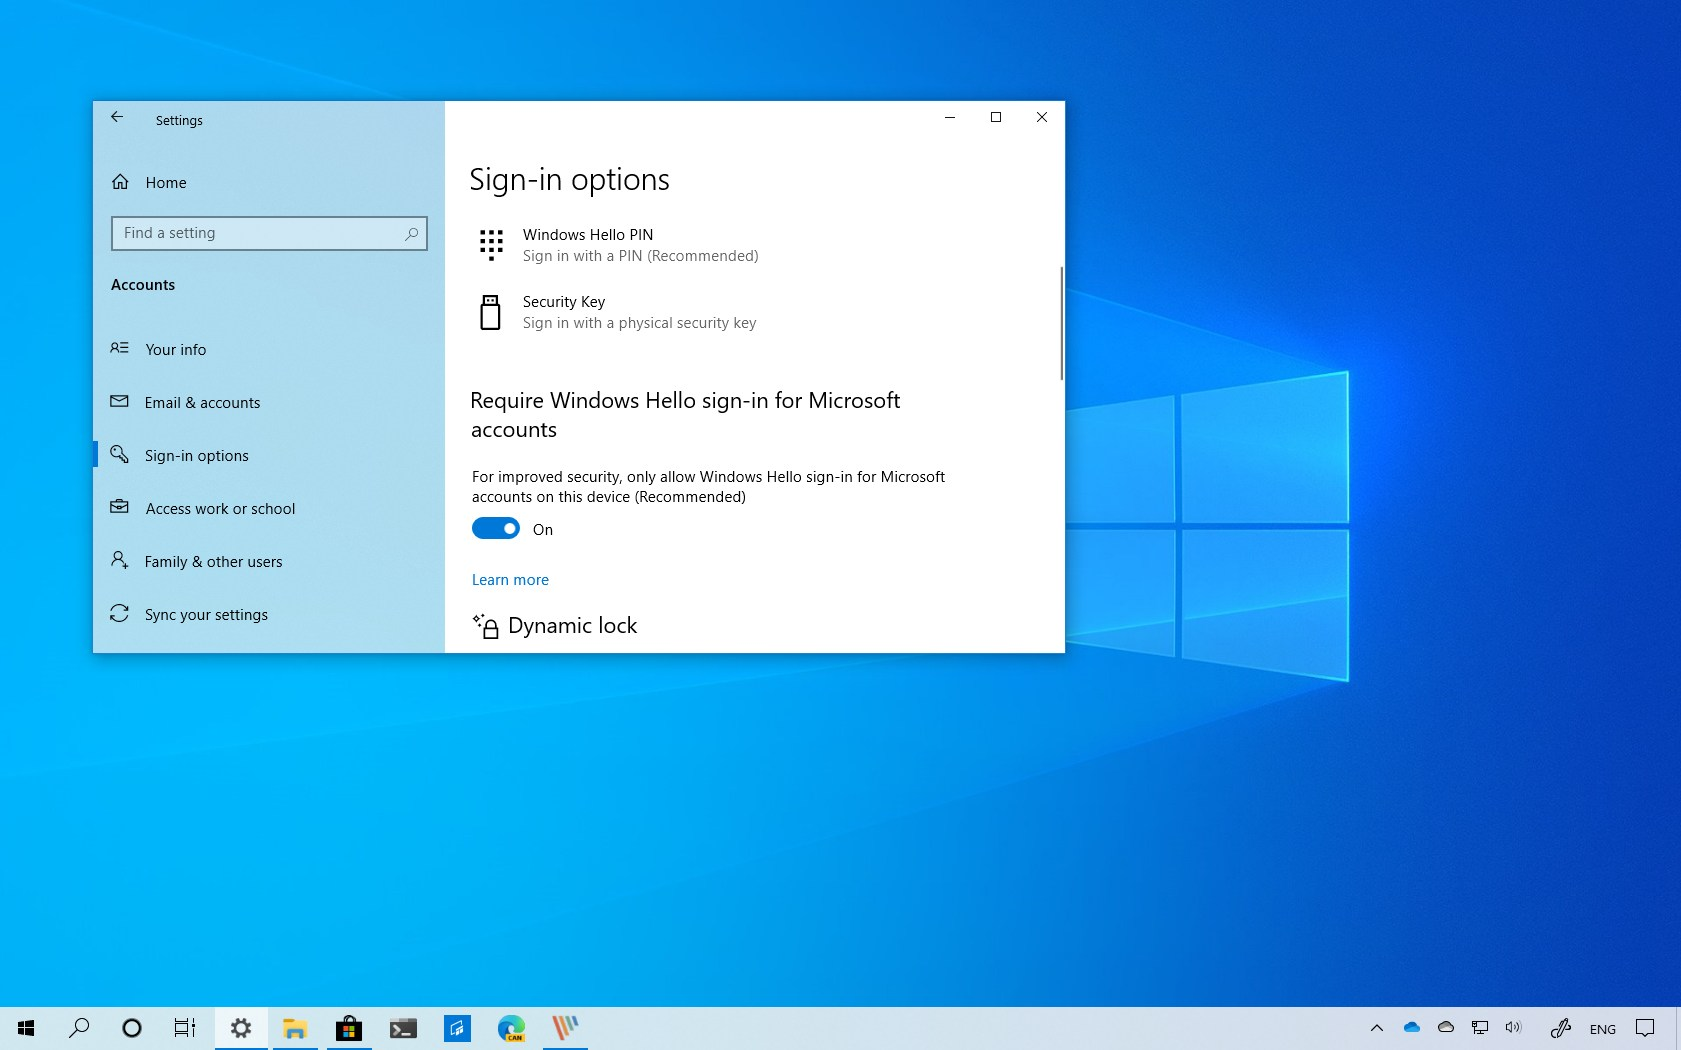 How to securely use PC without password on Windows 10 • Pureinfotech